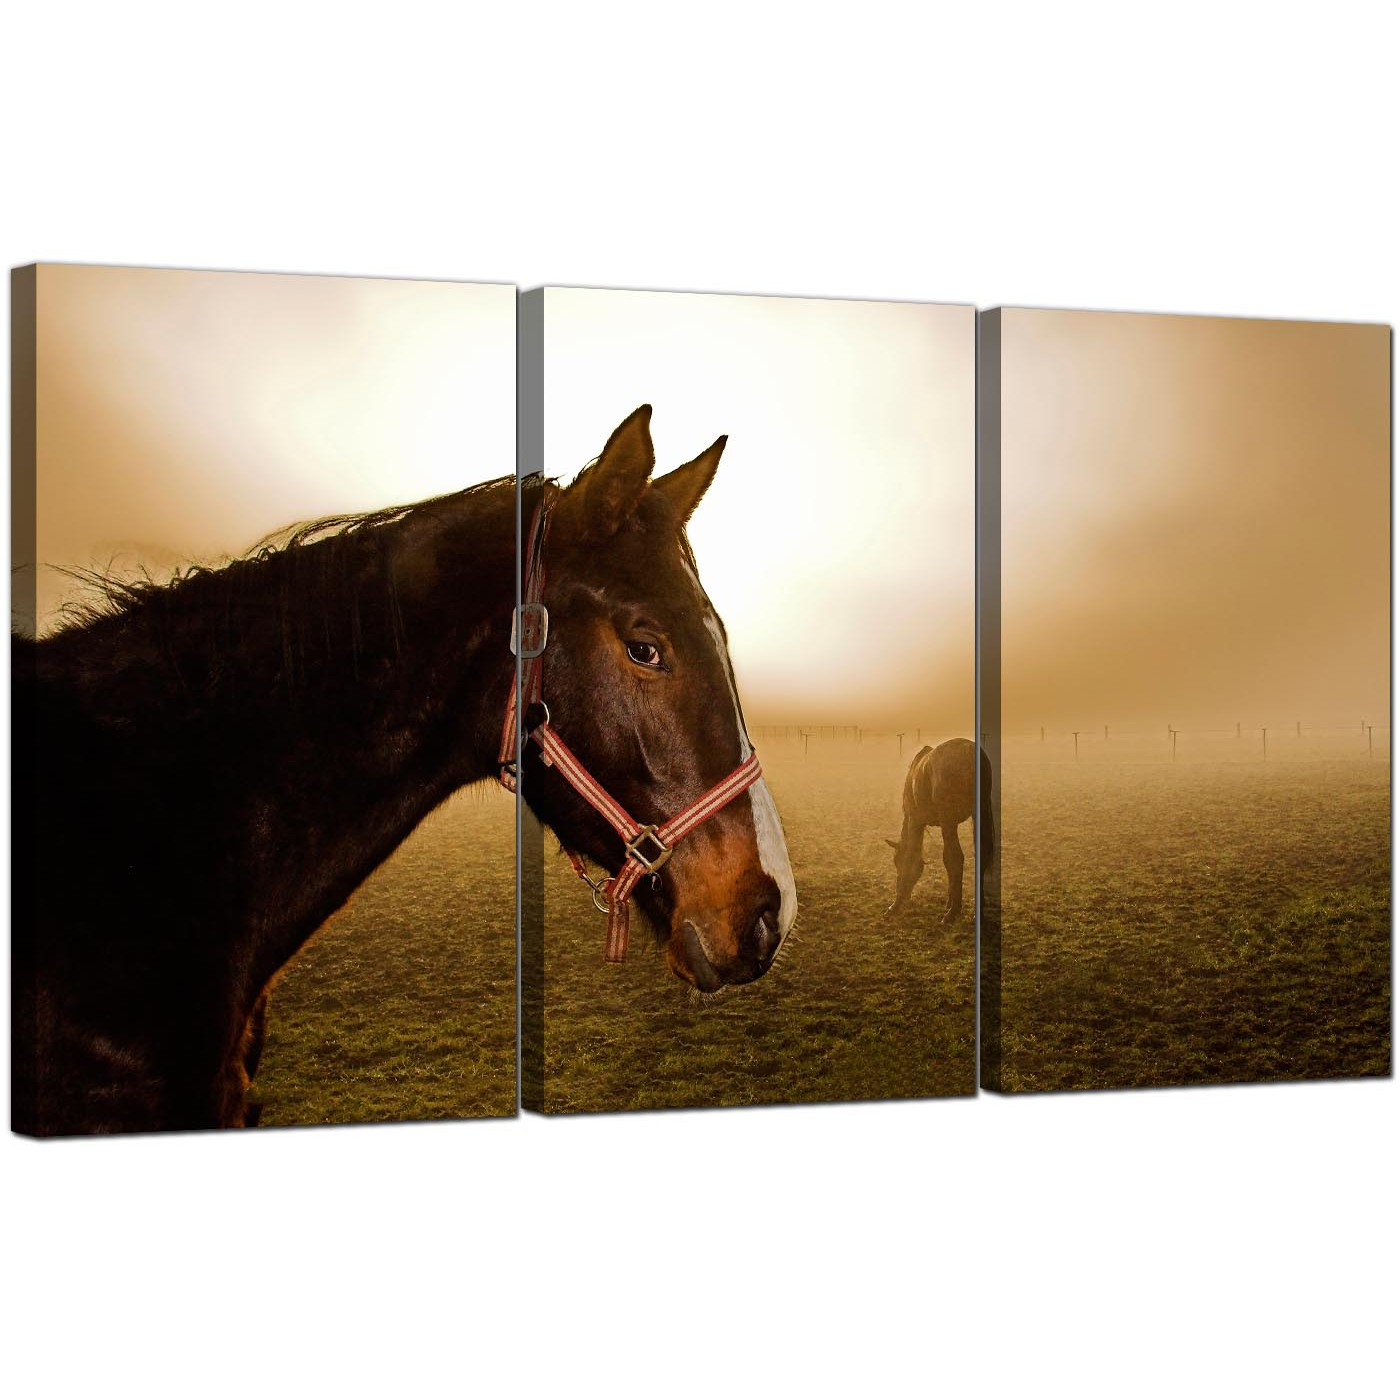 Display Gallery Item 5 3 Panel Countryside Canvas Art Misty Dawn 3130 6